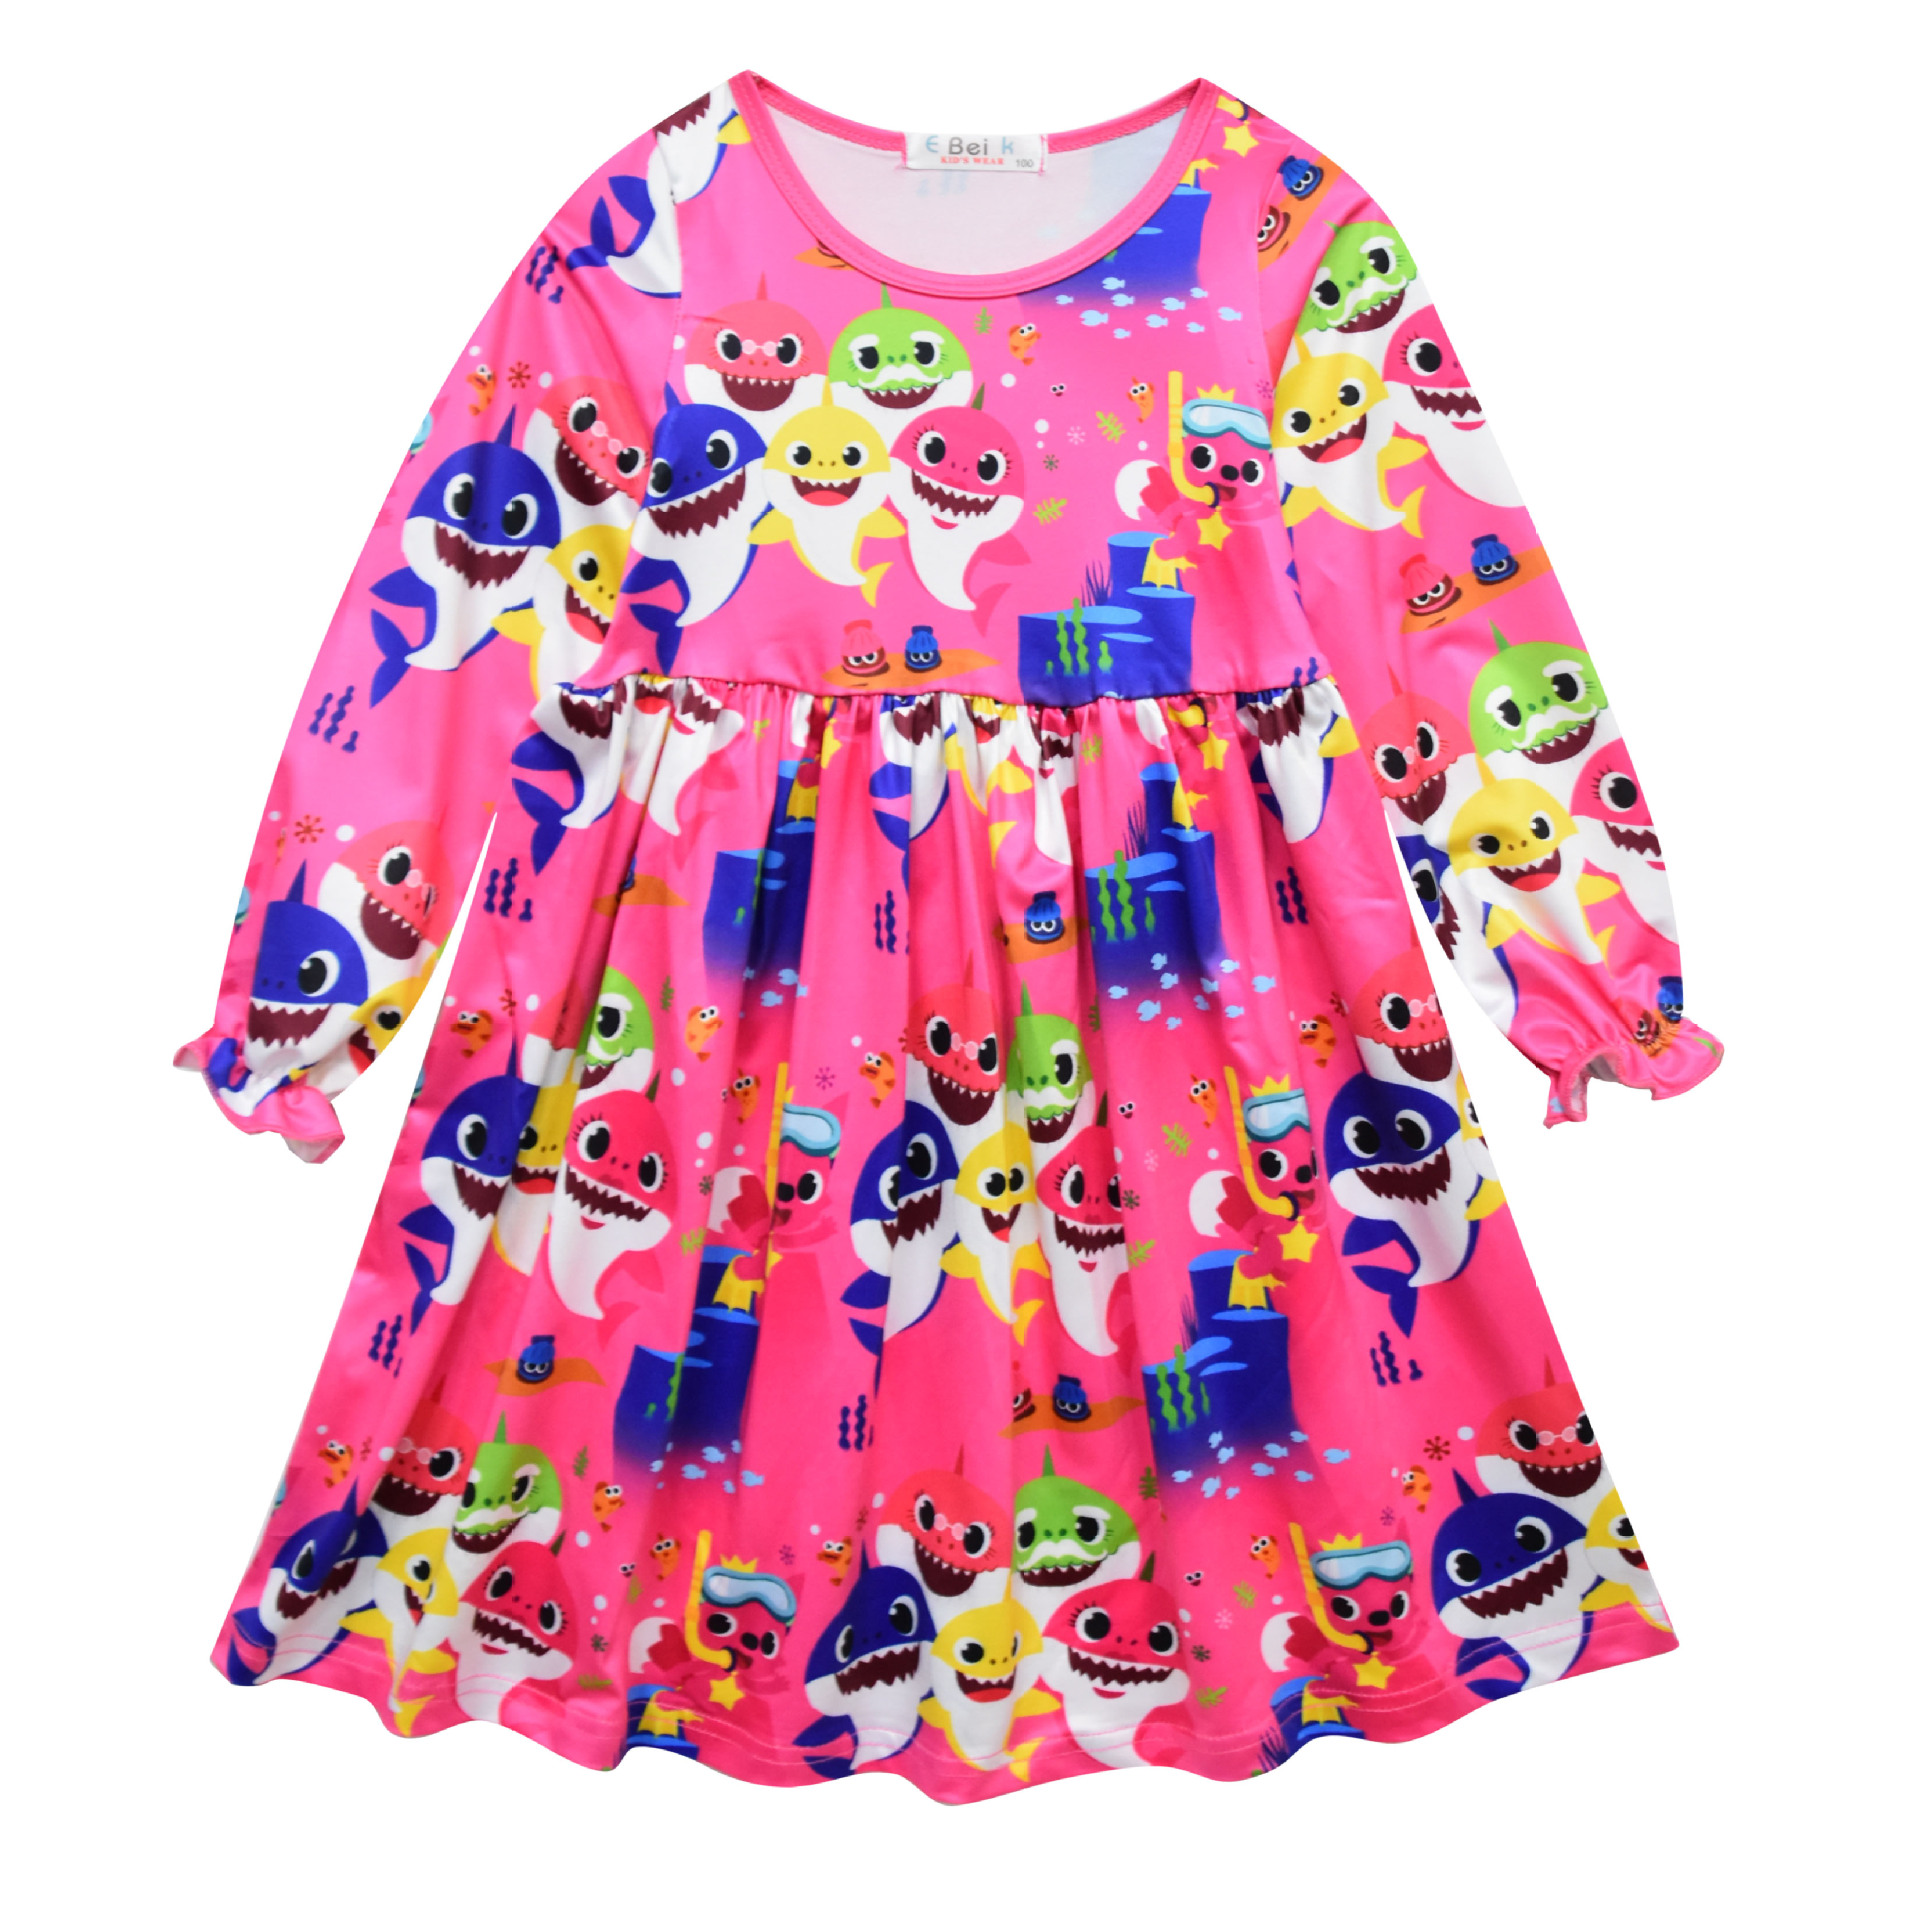 2019 Kids Girls Dress Baby Shark Clothes Toddler Girl Long Sleeve Dress Children Birthday Outfits Vestido Princess Dress